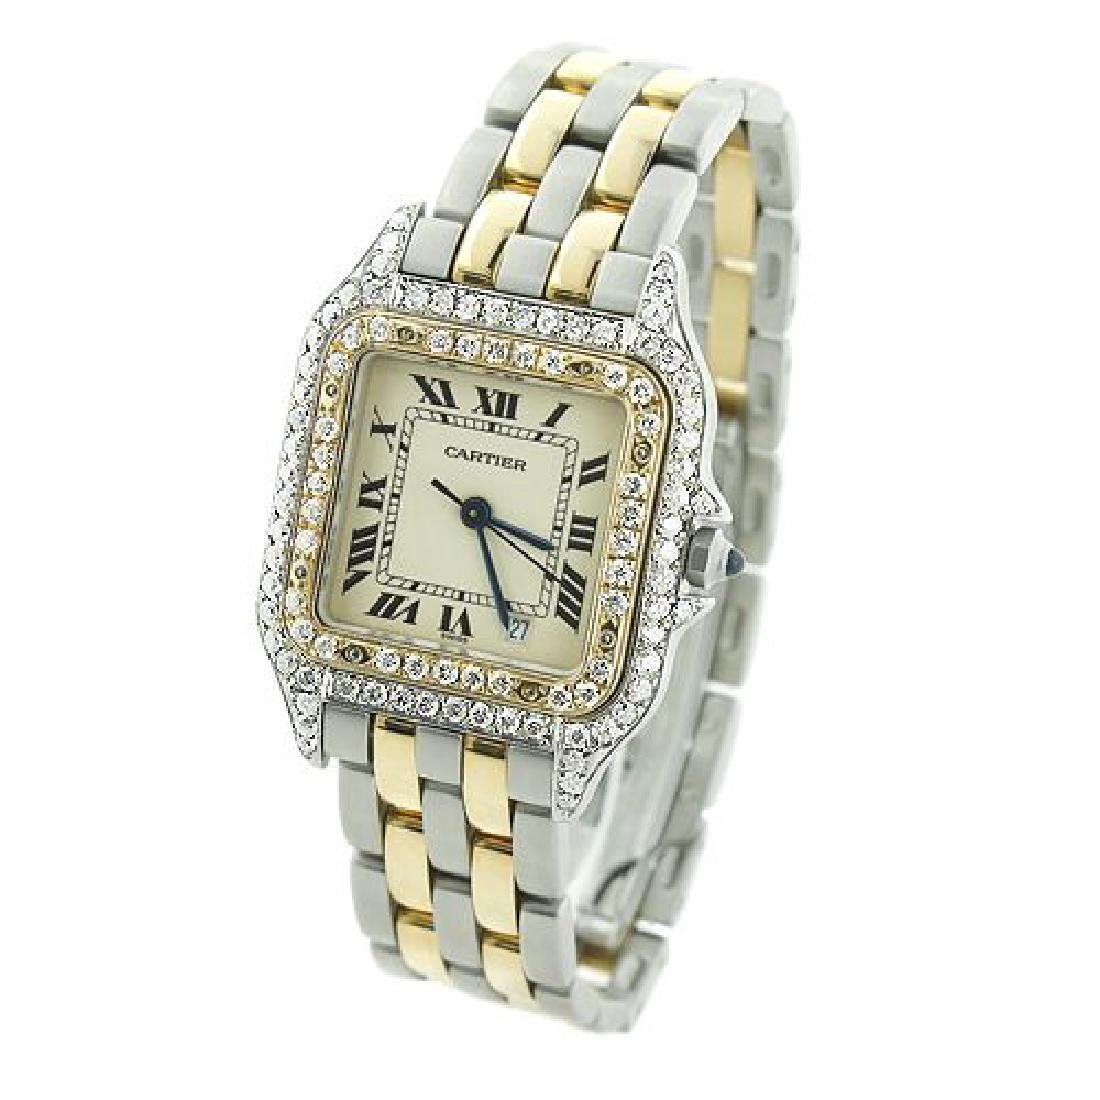 Vintage Cartier Panthere 18K Gold Steel Diamond Watch